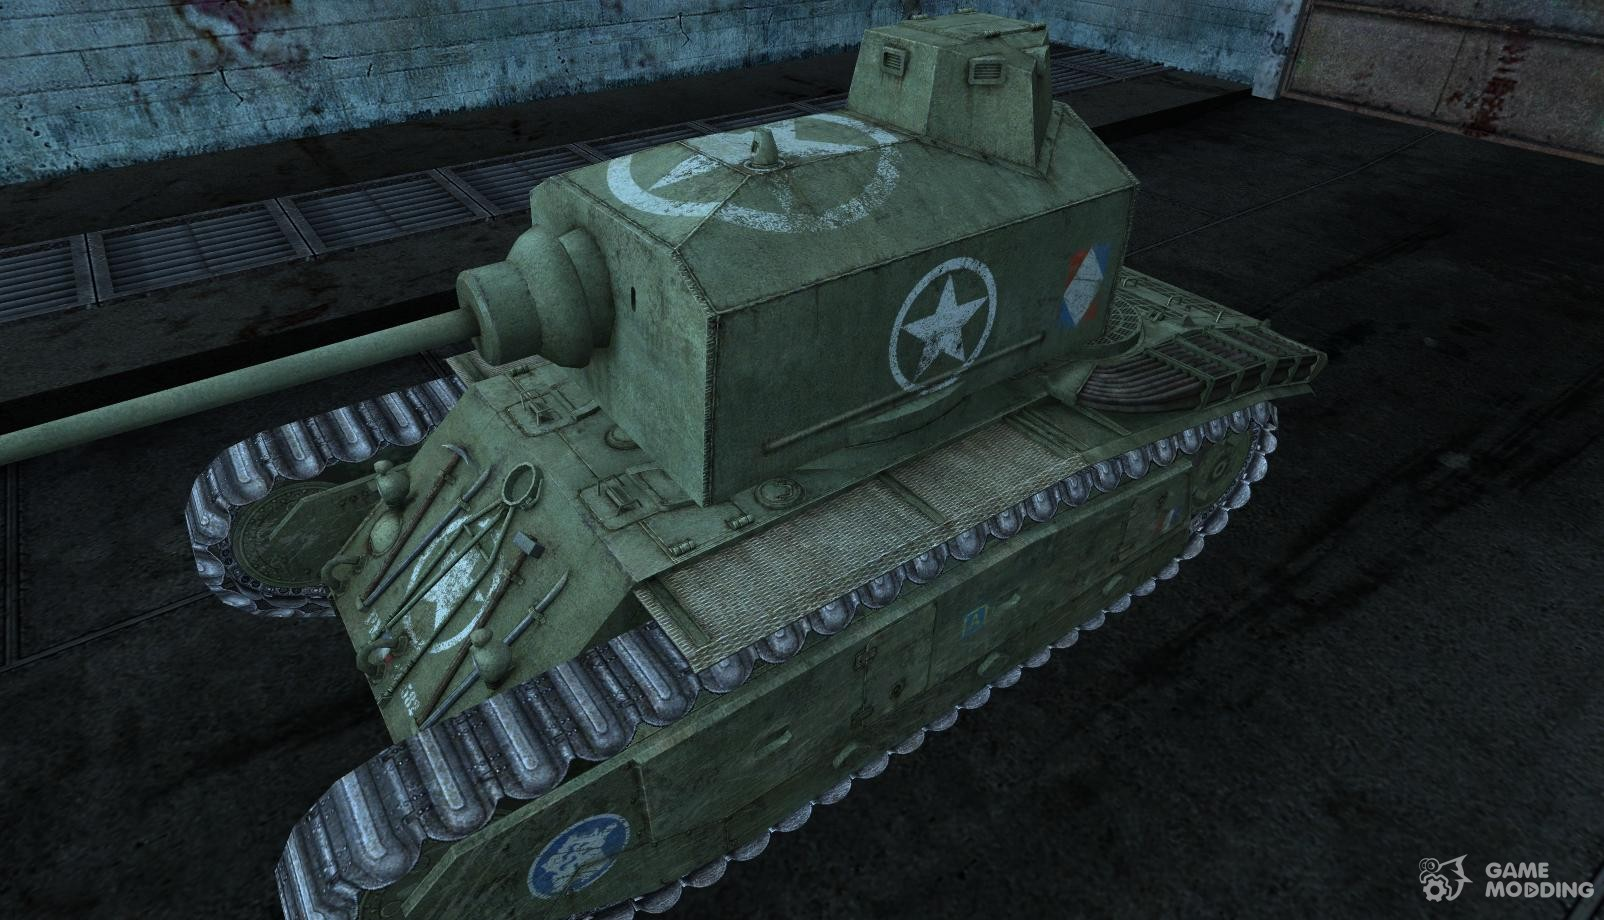 Skins for ARL 44 World of Tanks 0.9.22.0.1 » Page 1